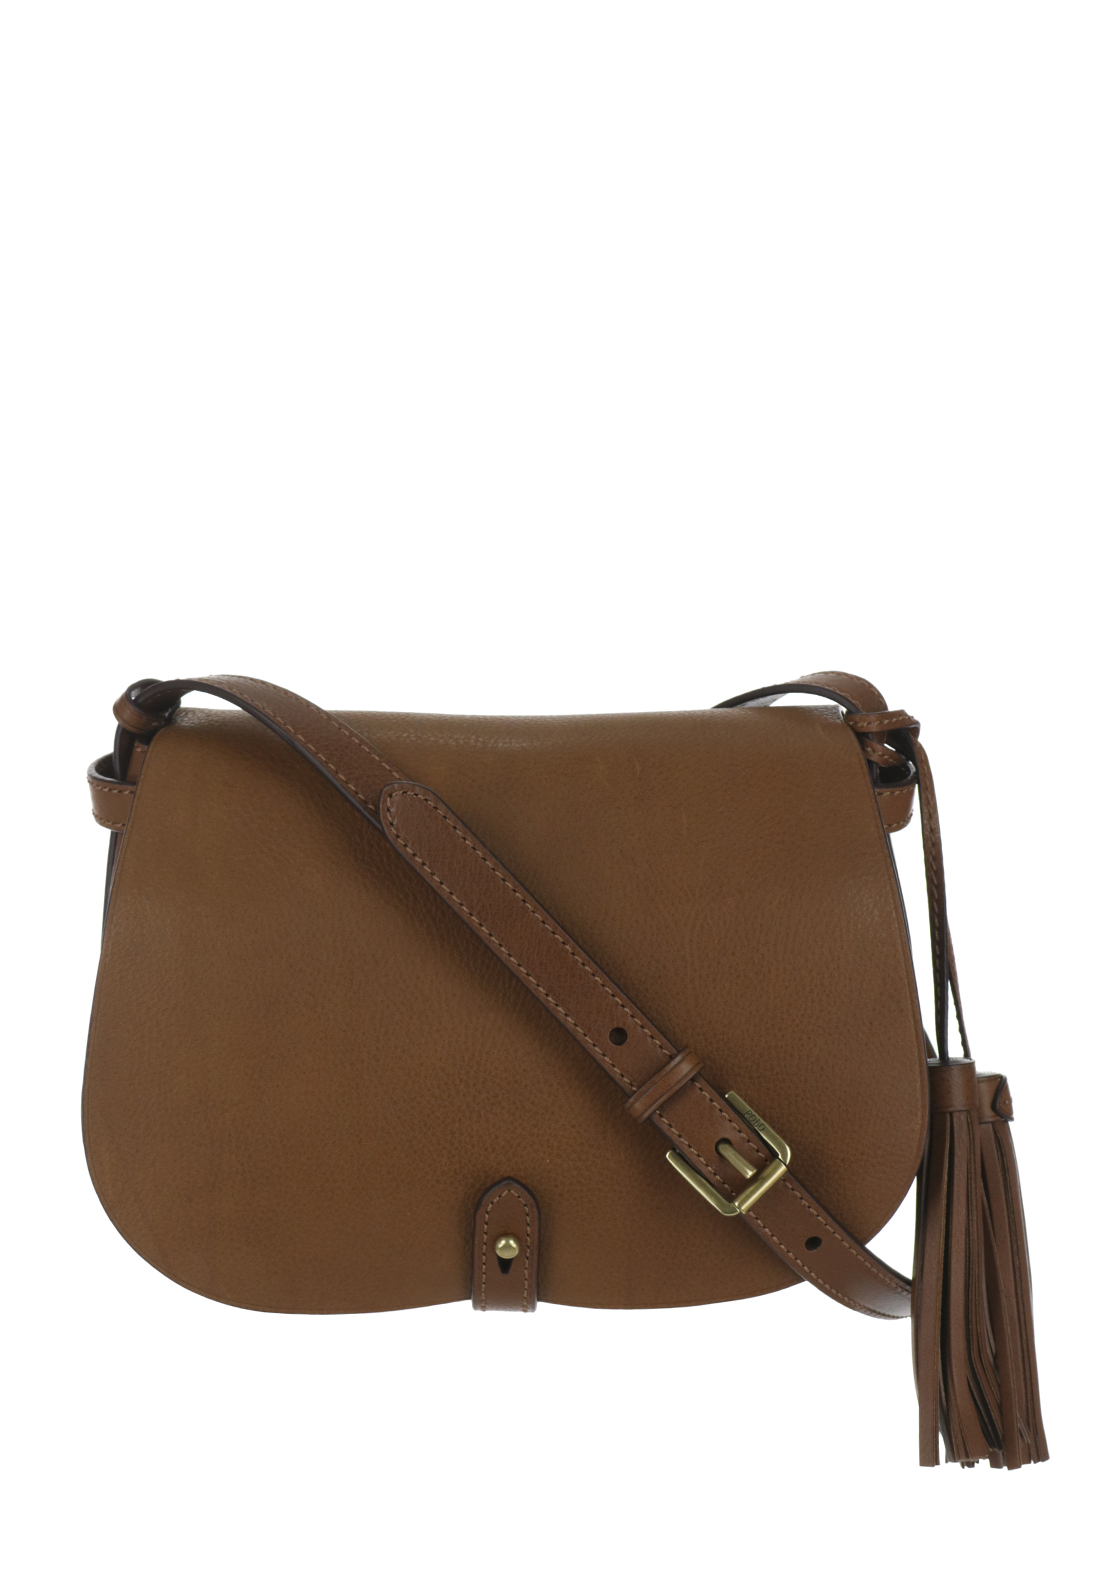 Ralph Lauren Polo Leather Saddle Crossbody Bag, Tan